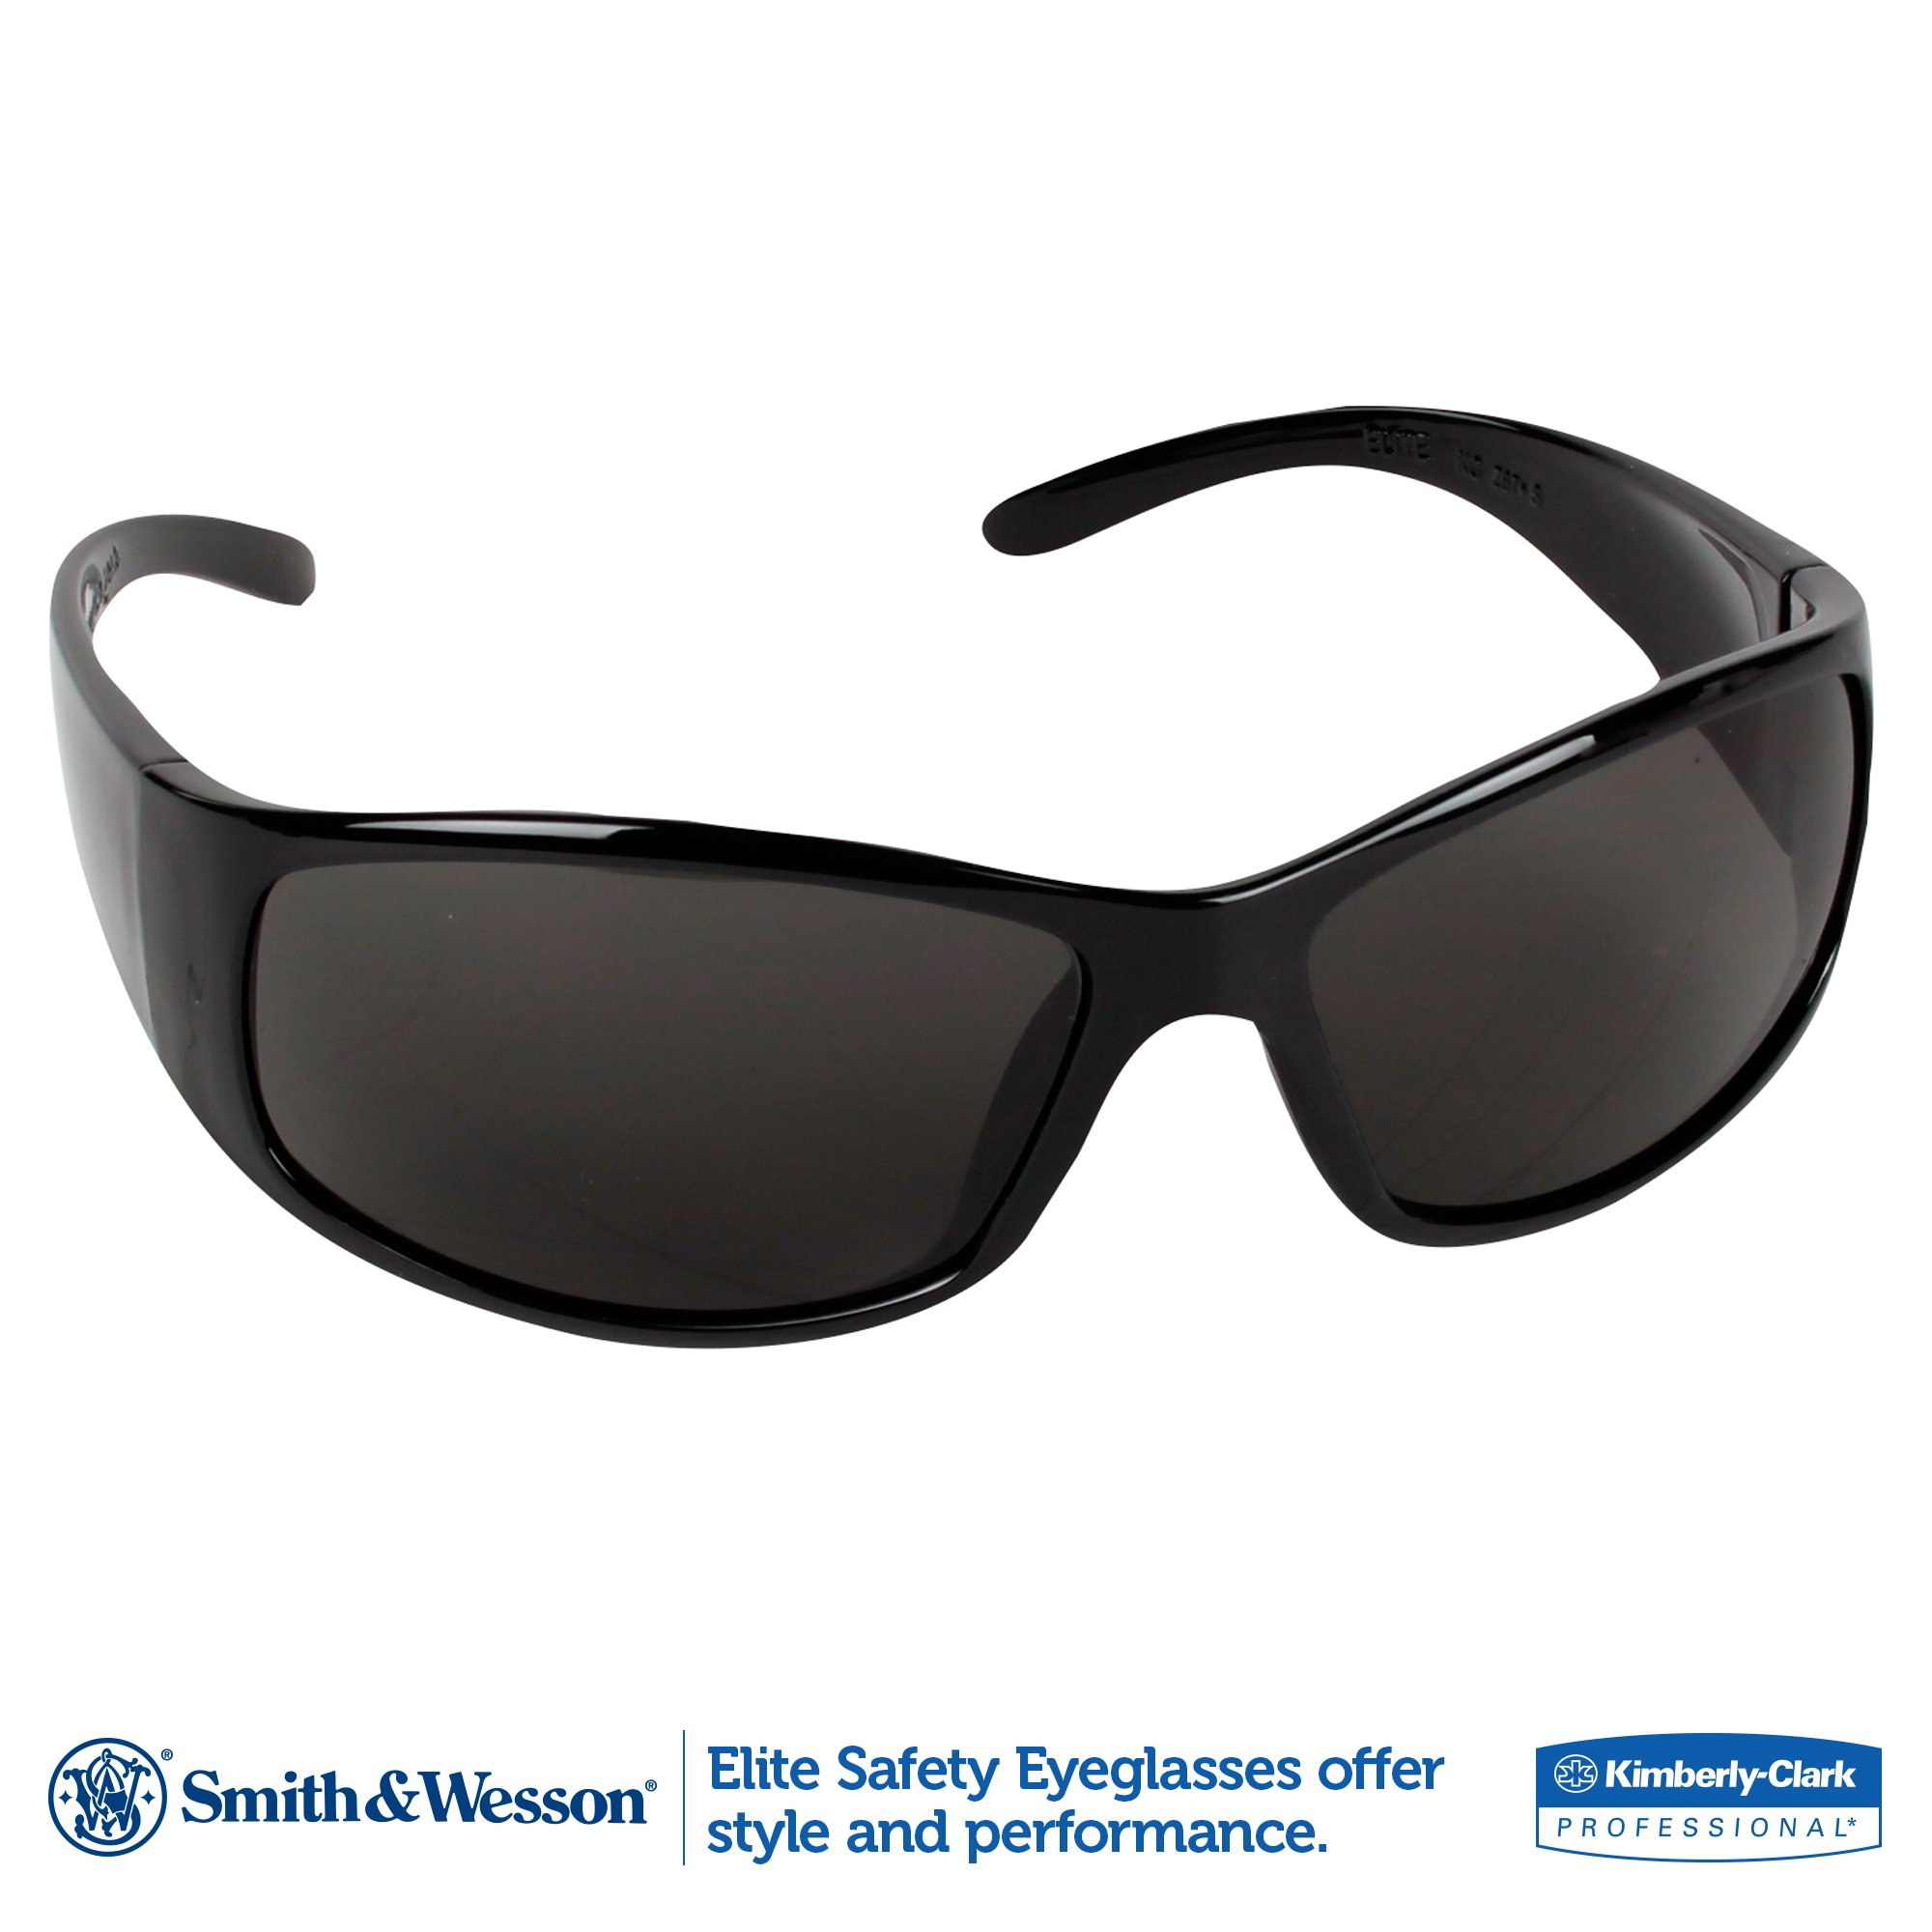 Smith and Wesson Safety Glasses (21303), Elite Safety Sunglasses, Smoke Anti-Fog Lenses with Black Frame, 12 Pairs / Case by Jackson Safety (Image #2)